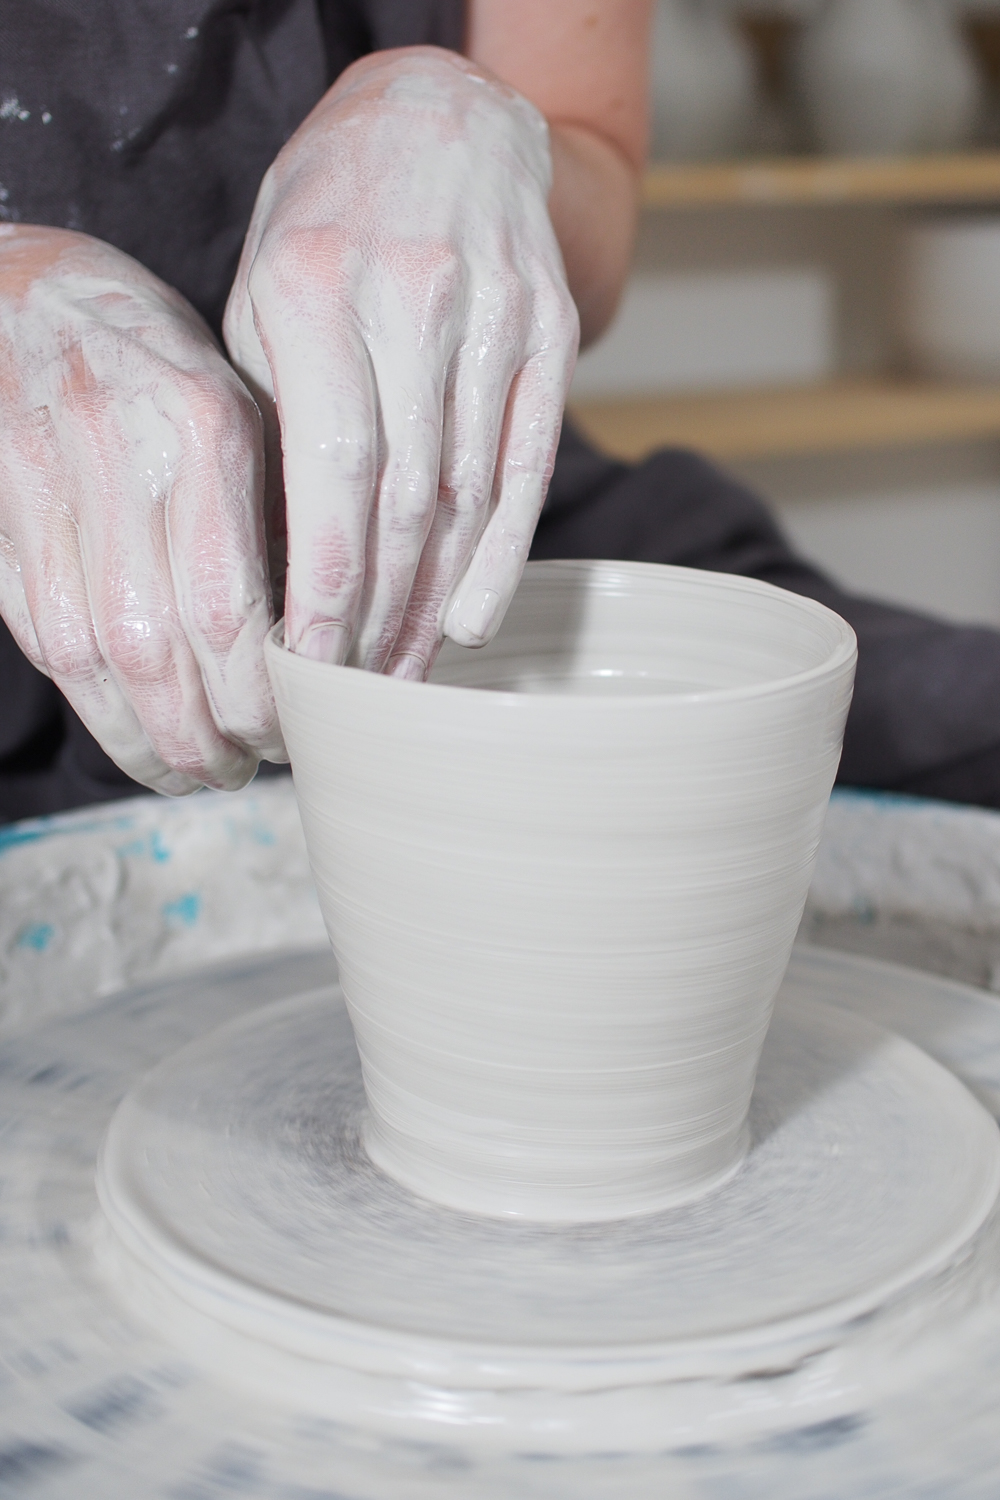 Buy handmade NZ Ceramics online at kaolin